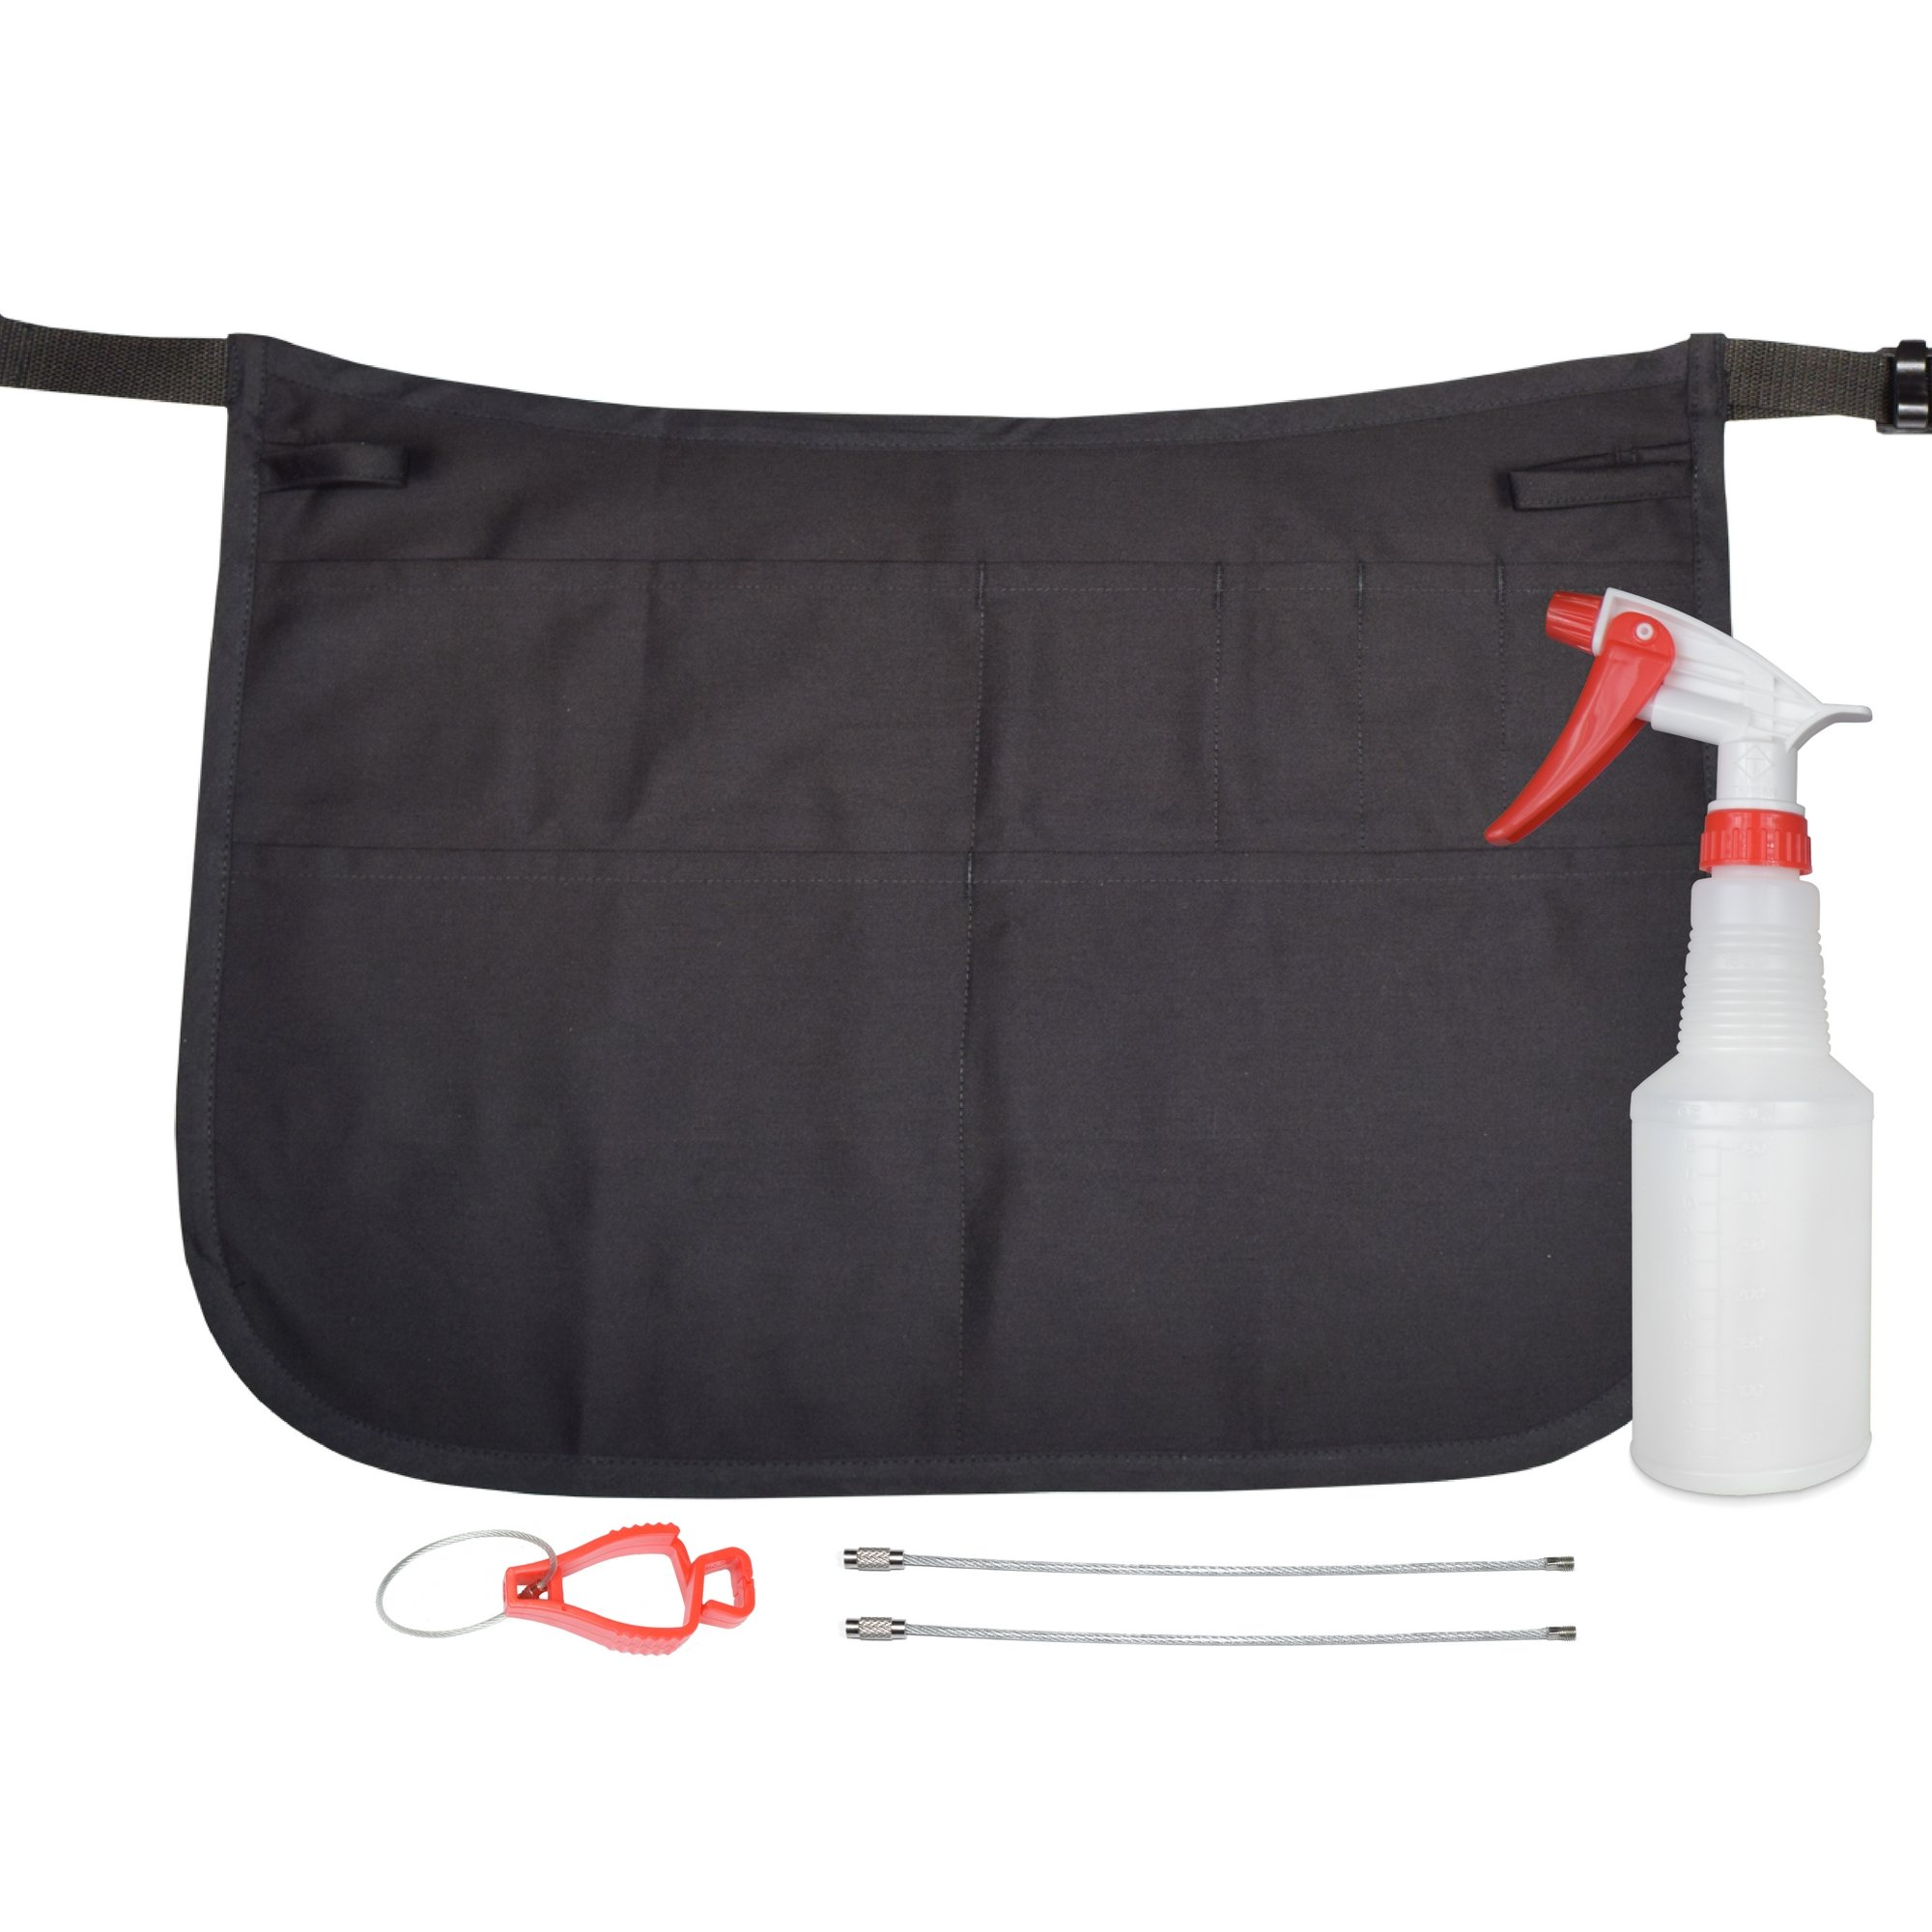 Professional Speed Cleaning Apron with 7 Pockets, Glove Holder, & Duster Holder - Speeds Up Cleaning, Saves Time